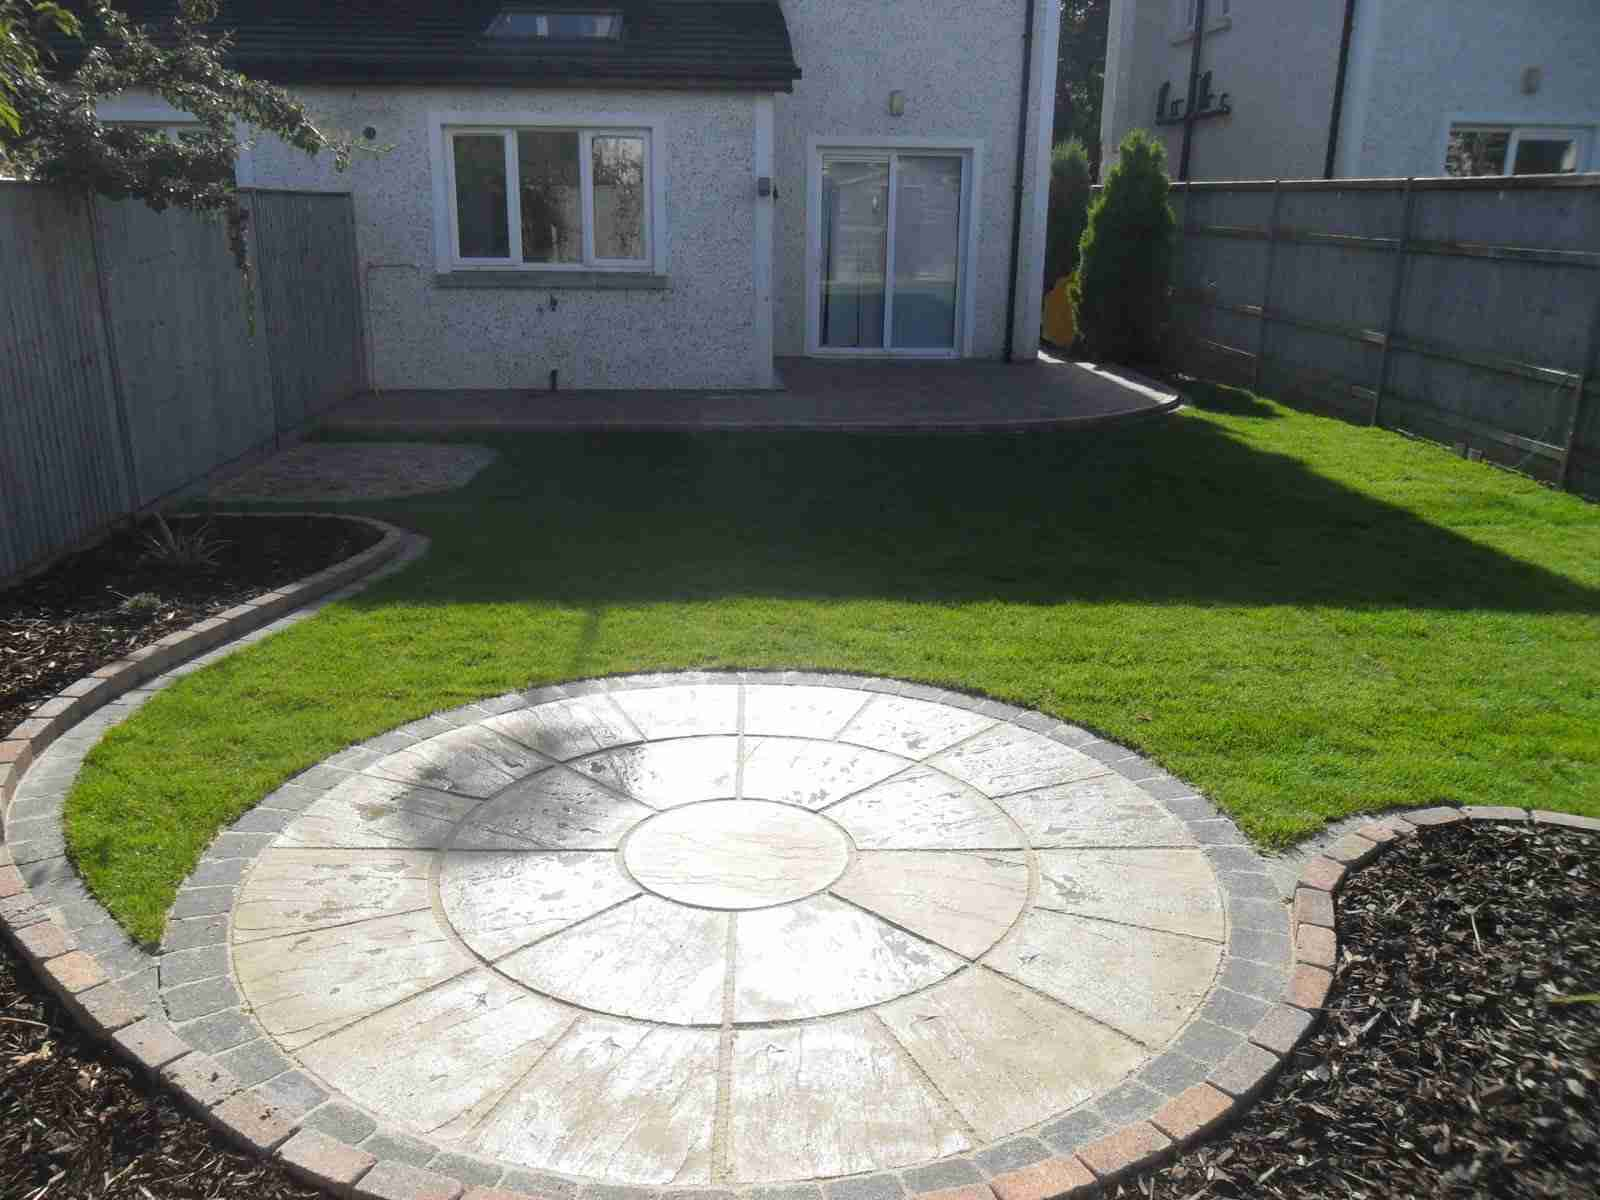 Circular Patio,Raised Patio Garden Design, Roschoill ... on Curved Patio Ideas id=63995